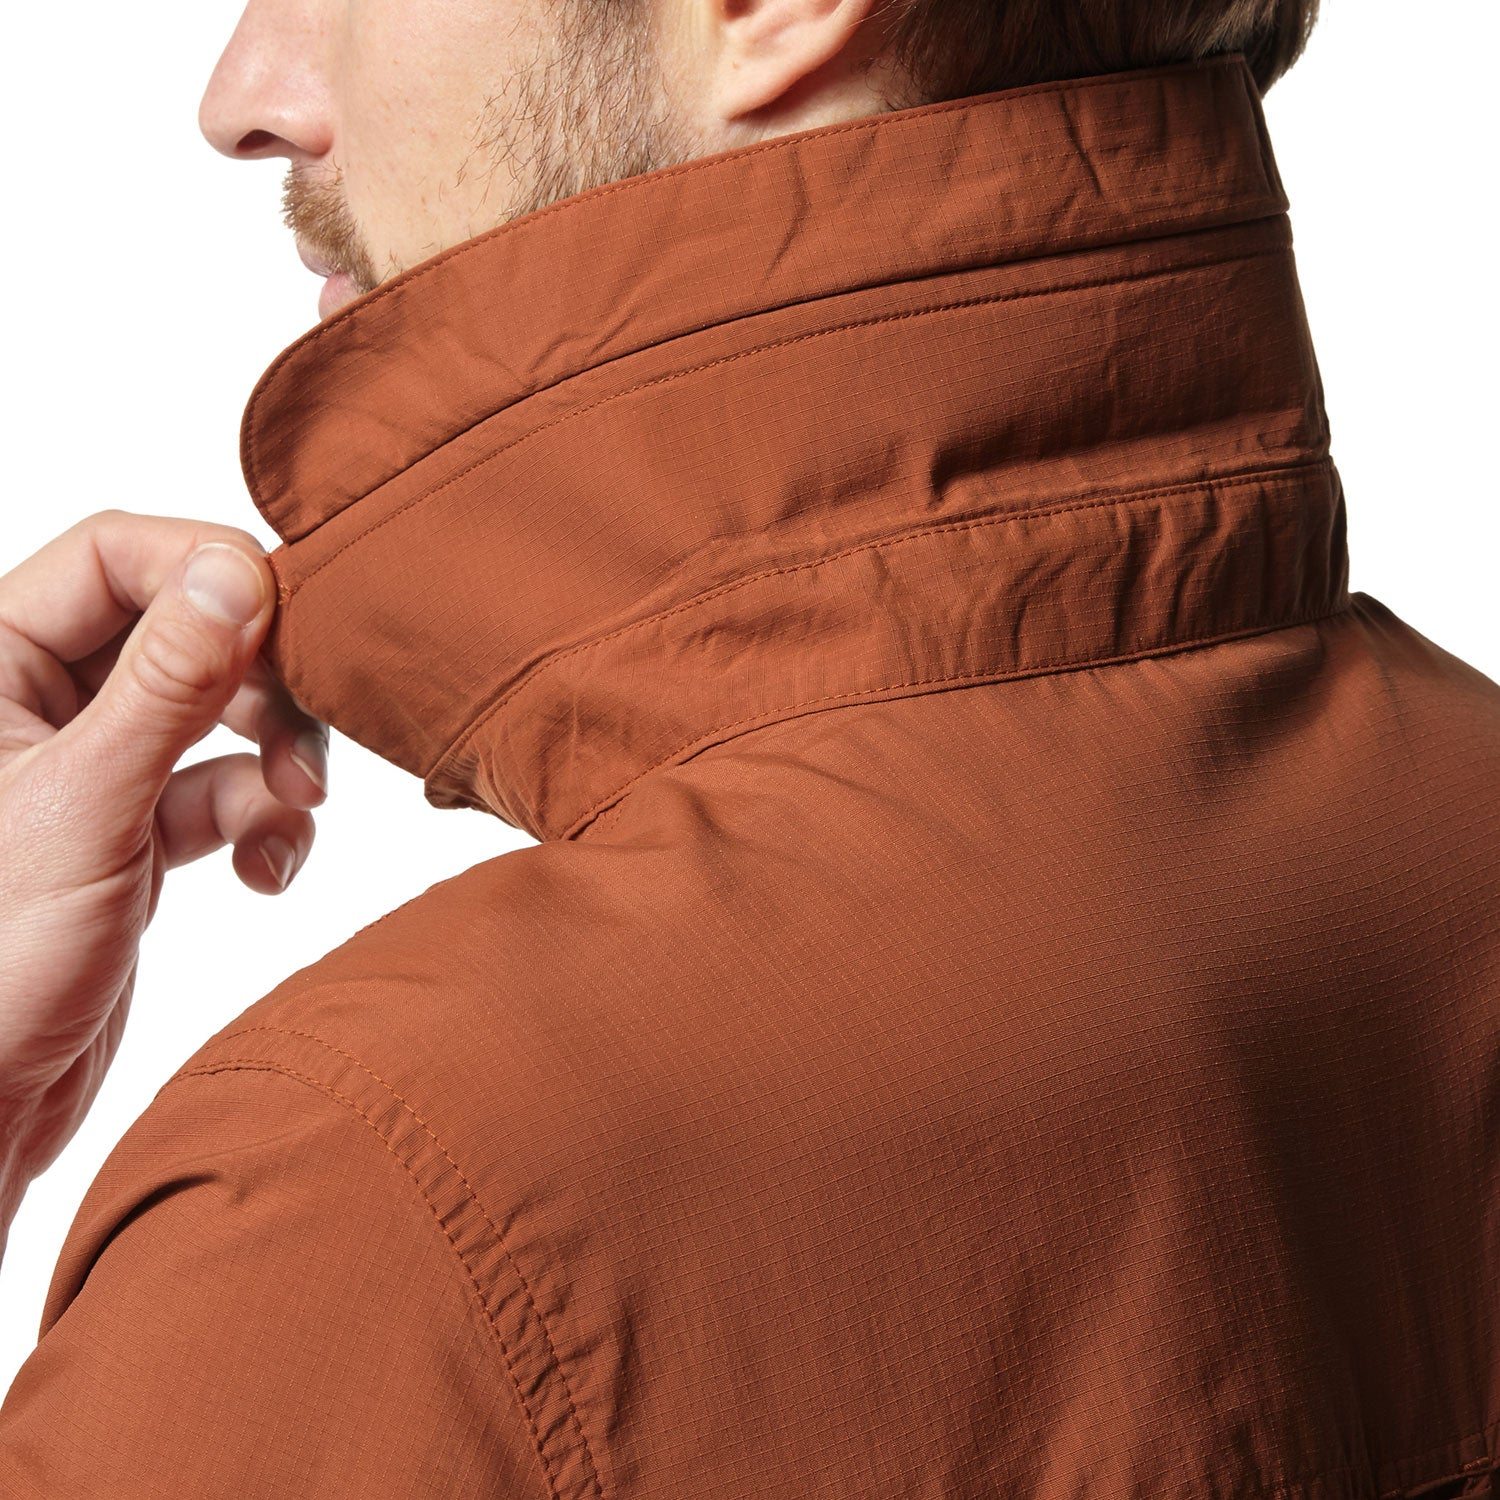 large collar to protect the back of the neck from sun